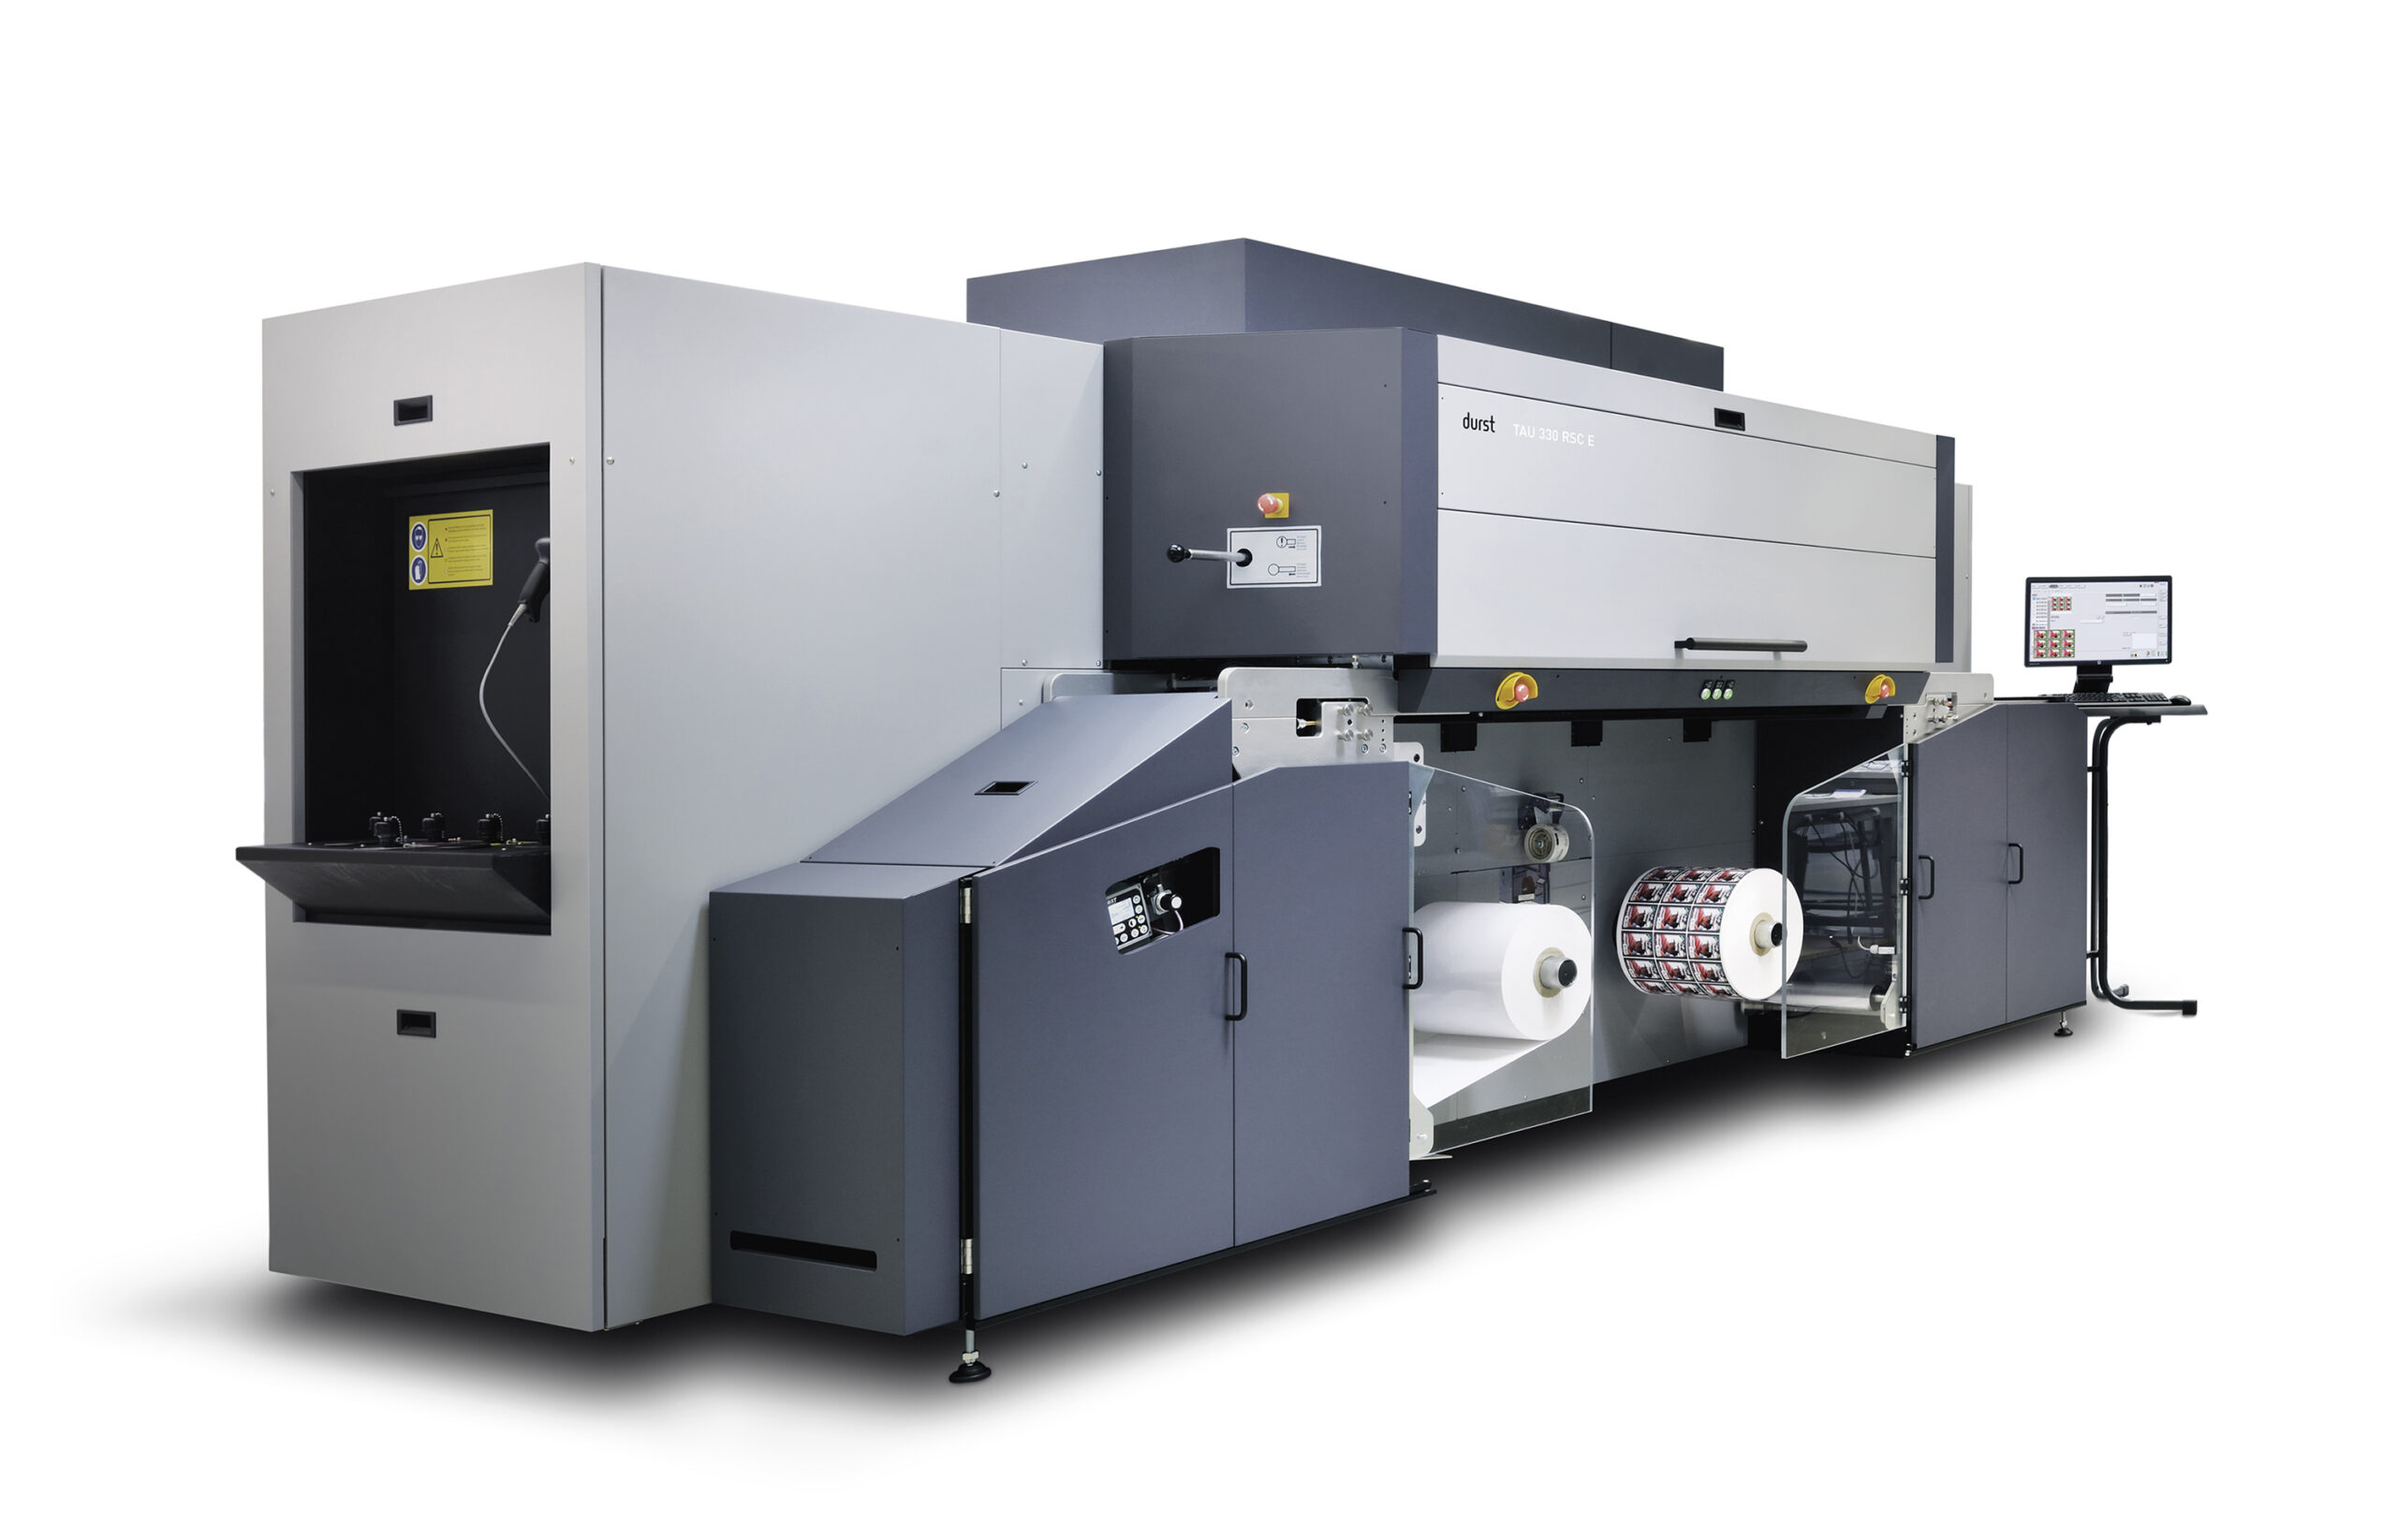 Label Solutions Inc Invests in Durst RSC-E 1200dpi Technology